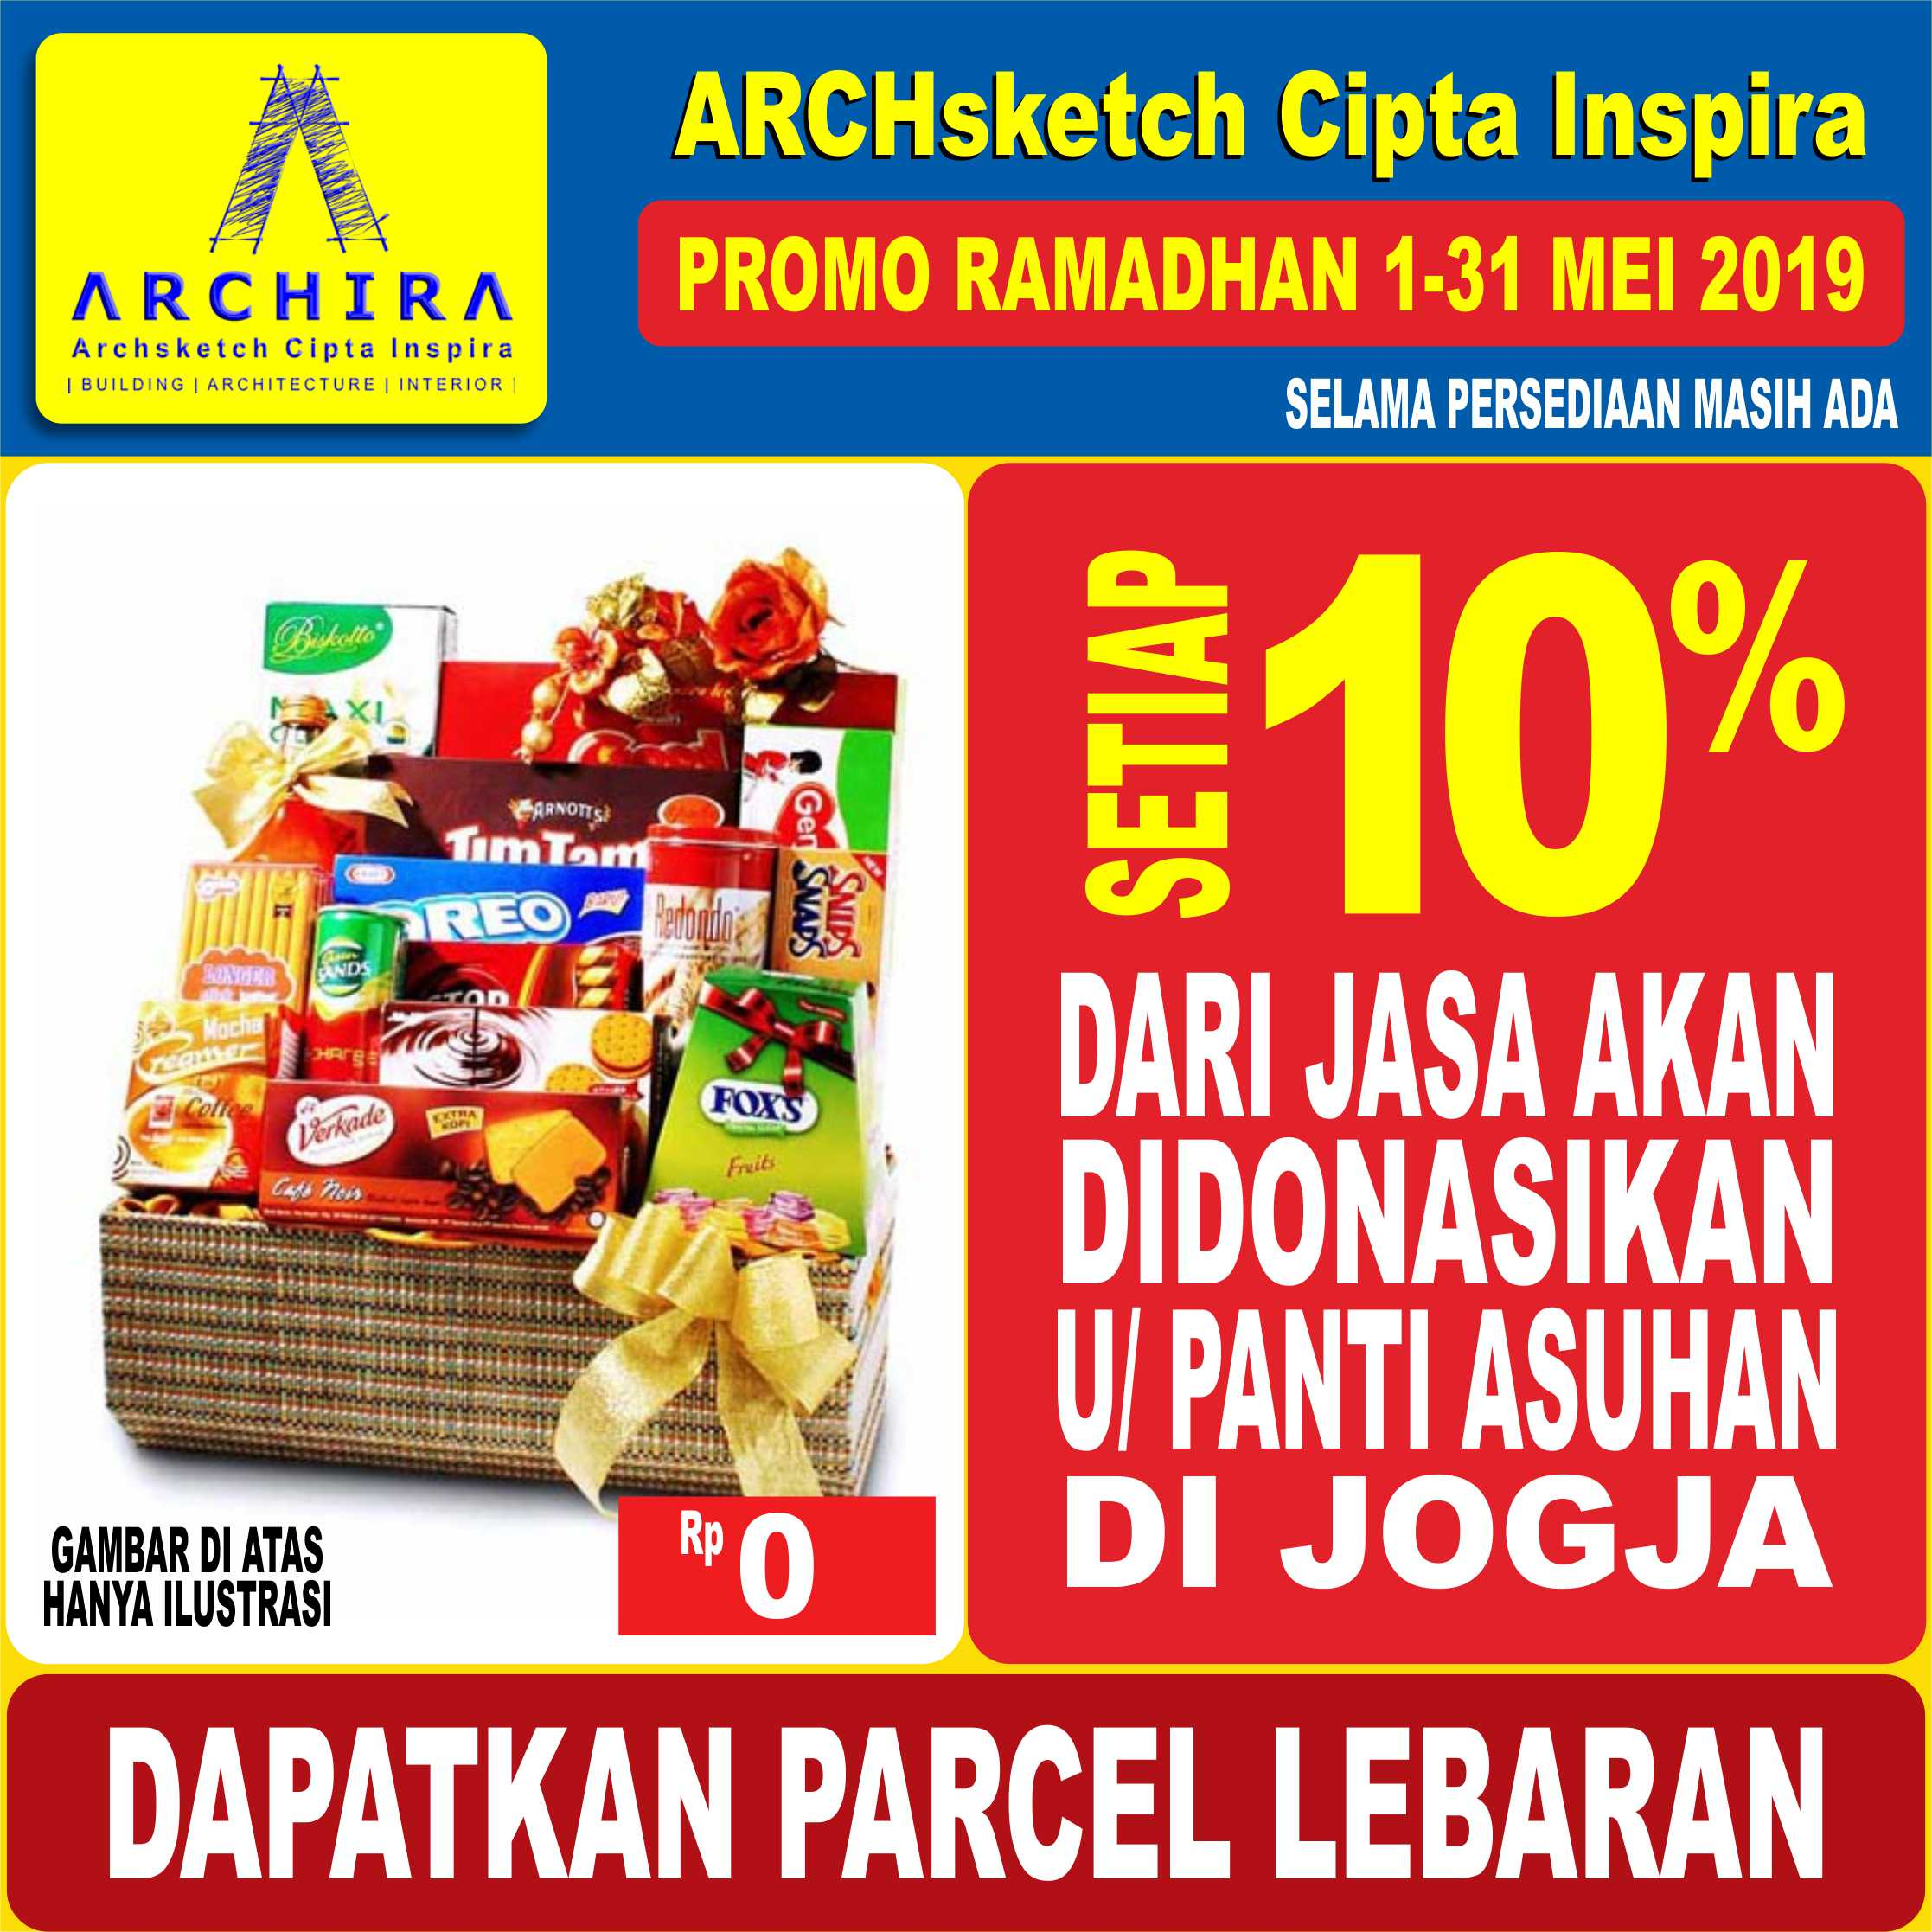 PROMO RAMADHAN part3